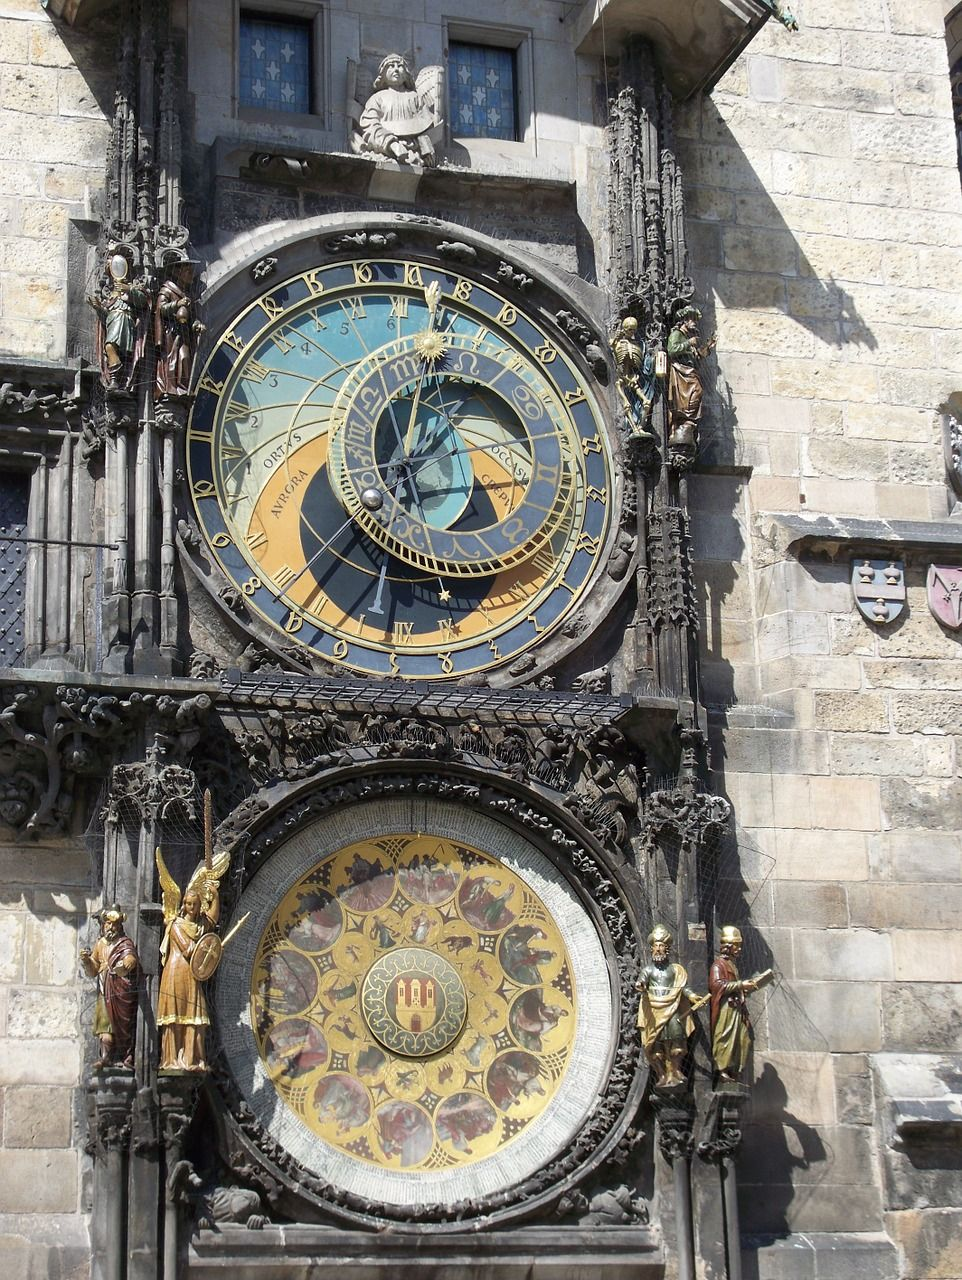 Take a look at these 5 incredible astronomical clocks from all over the world...